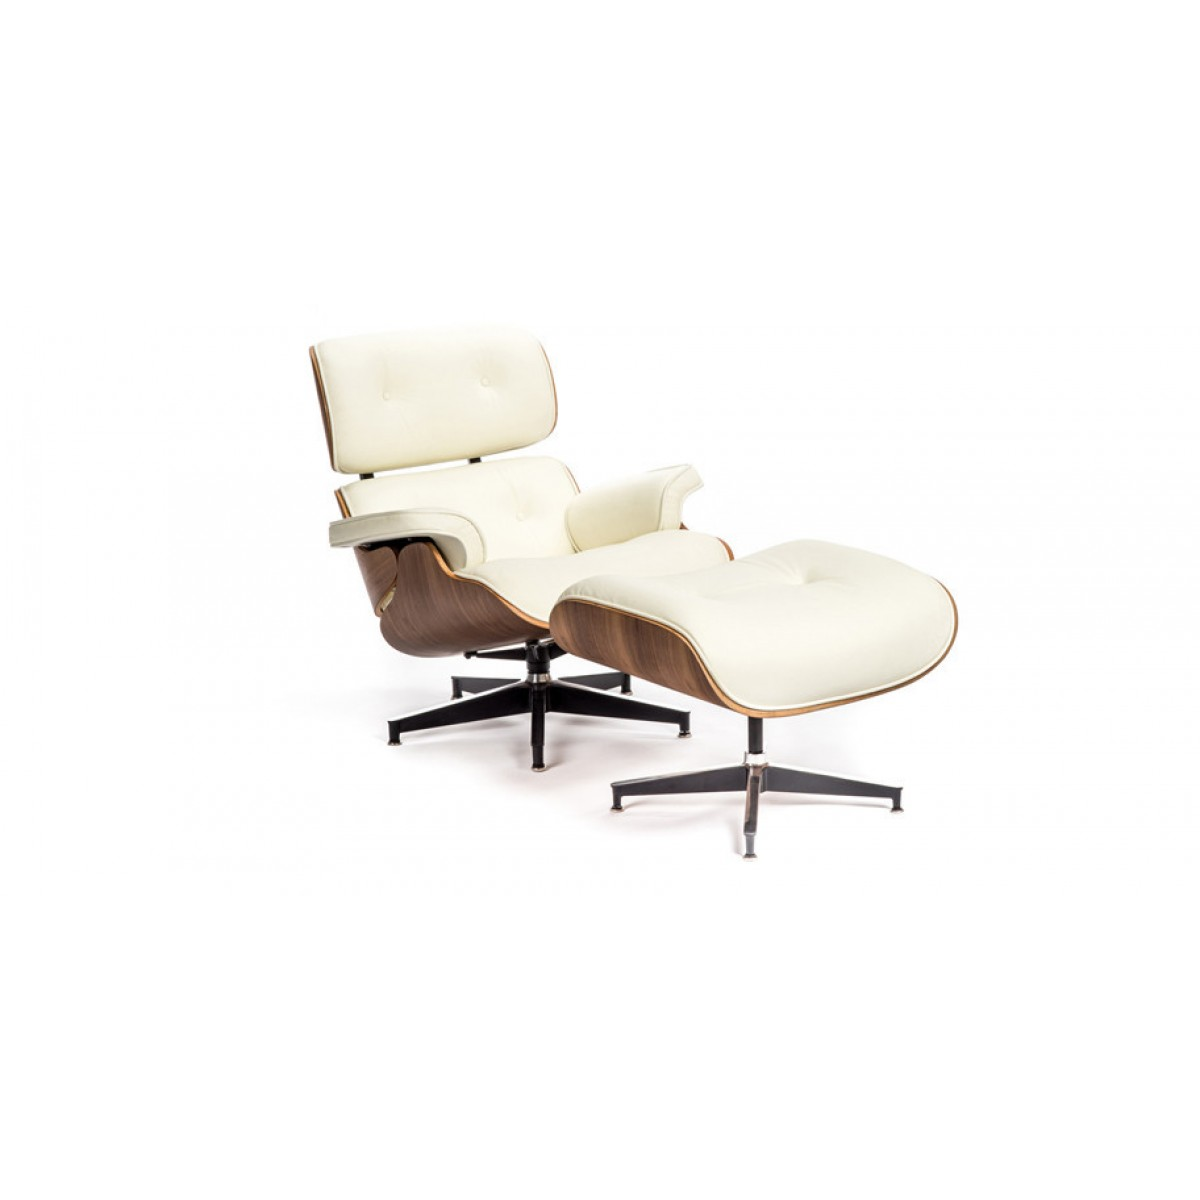 Eames style lounge chair and ottoman white leather walnut for Eames replica deutschland